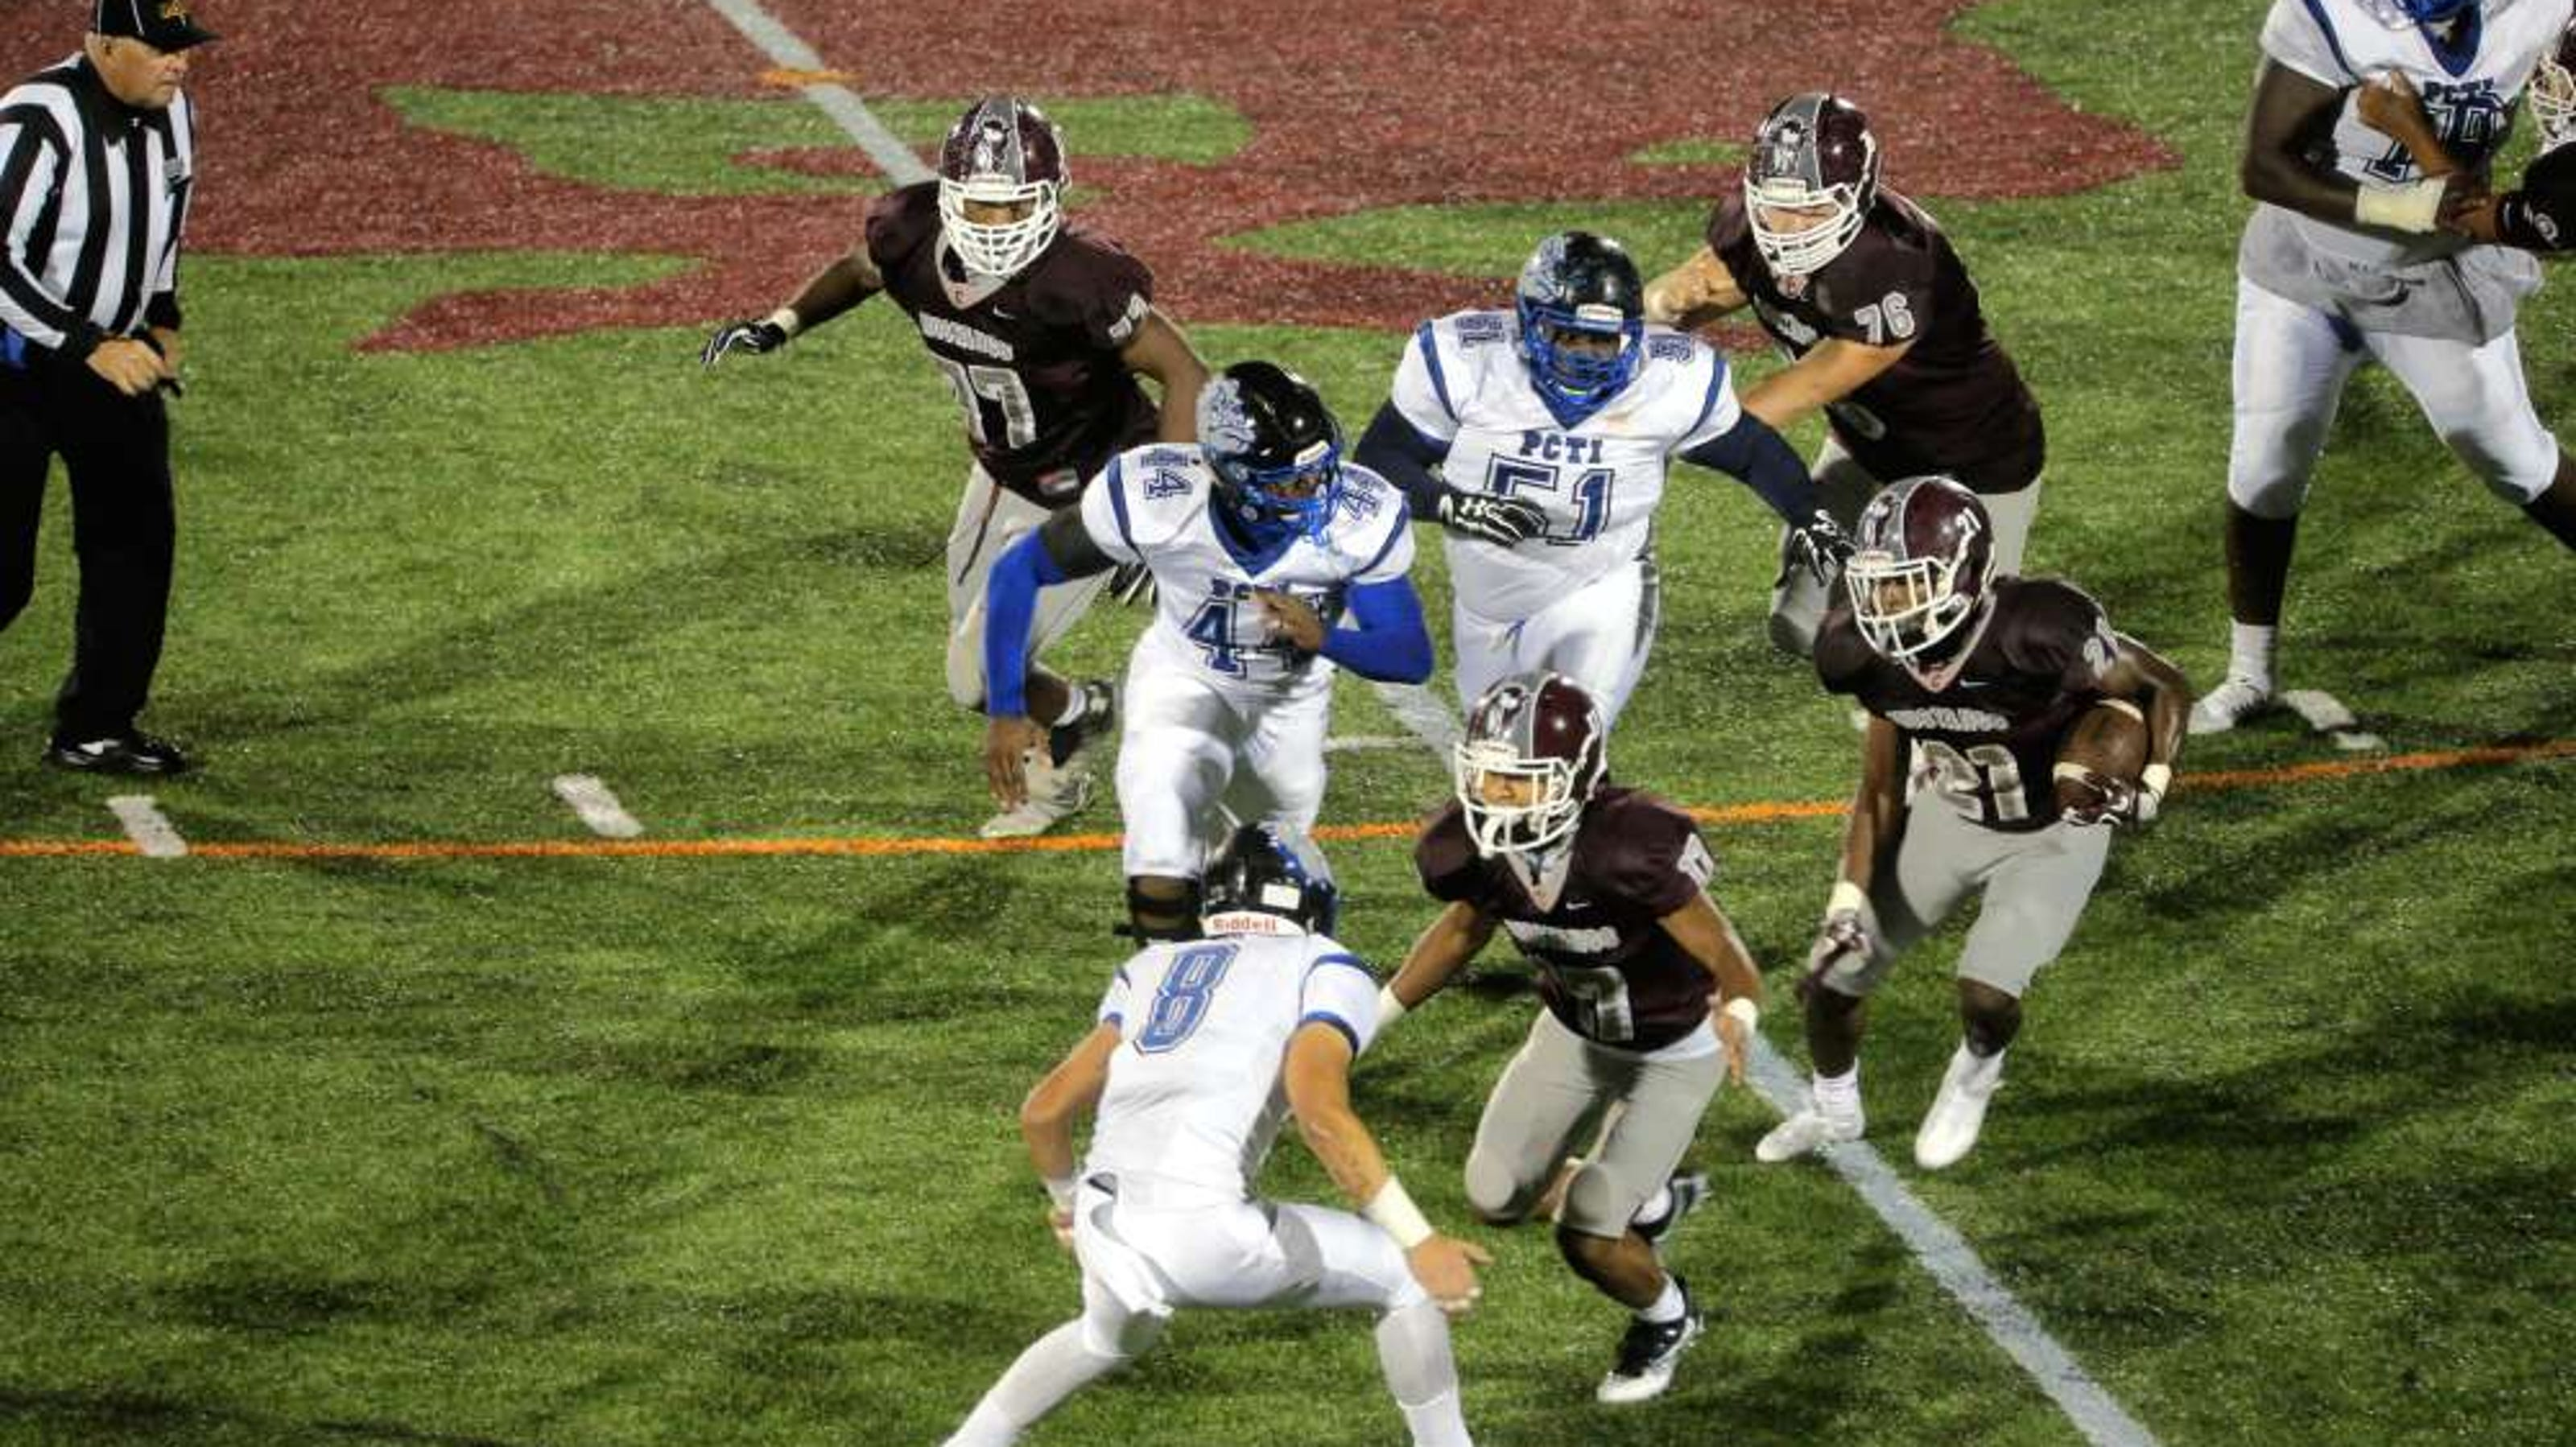 Football Clifton High School Falls To Pcti Will Face North Bergen